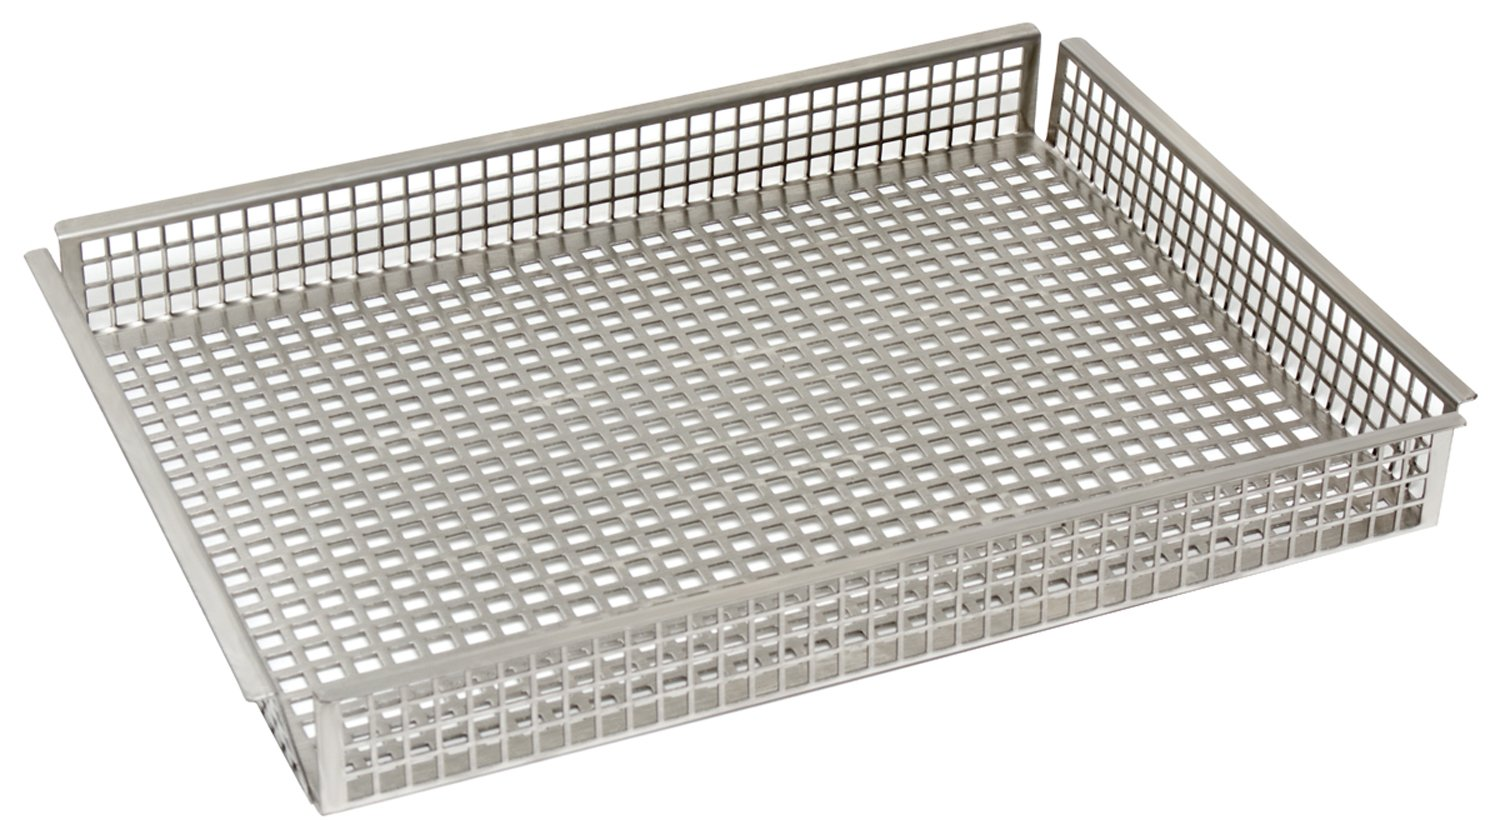 Cadco COB-Q Quarter Size Oven Basket, Stainless